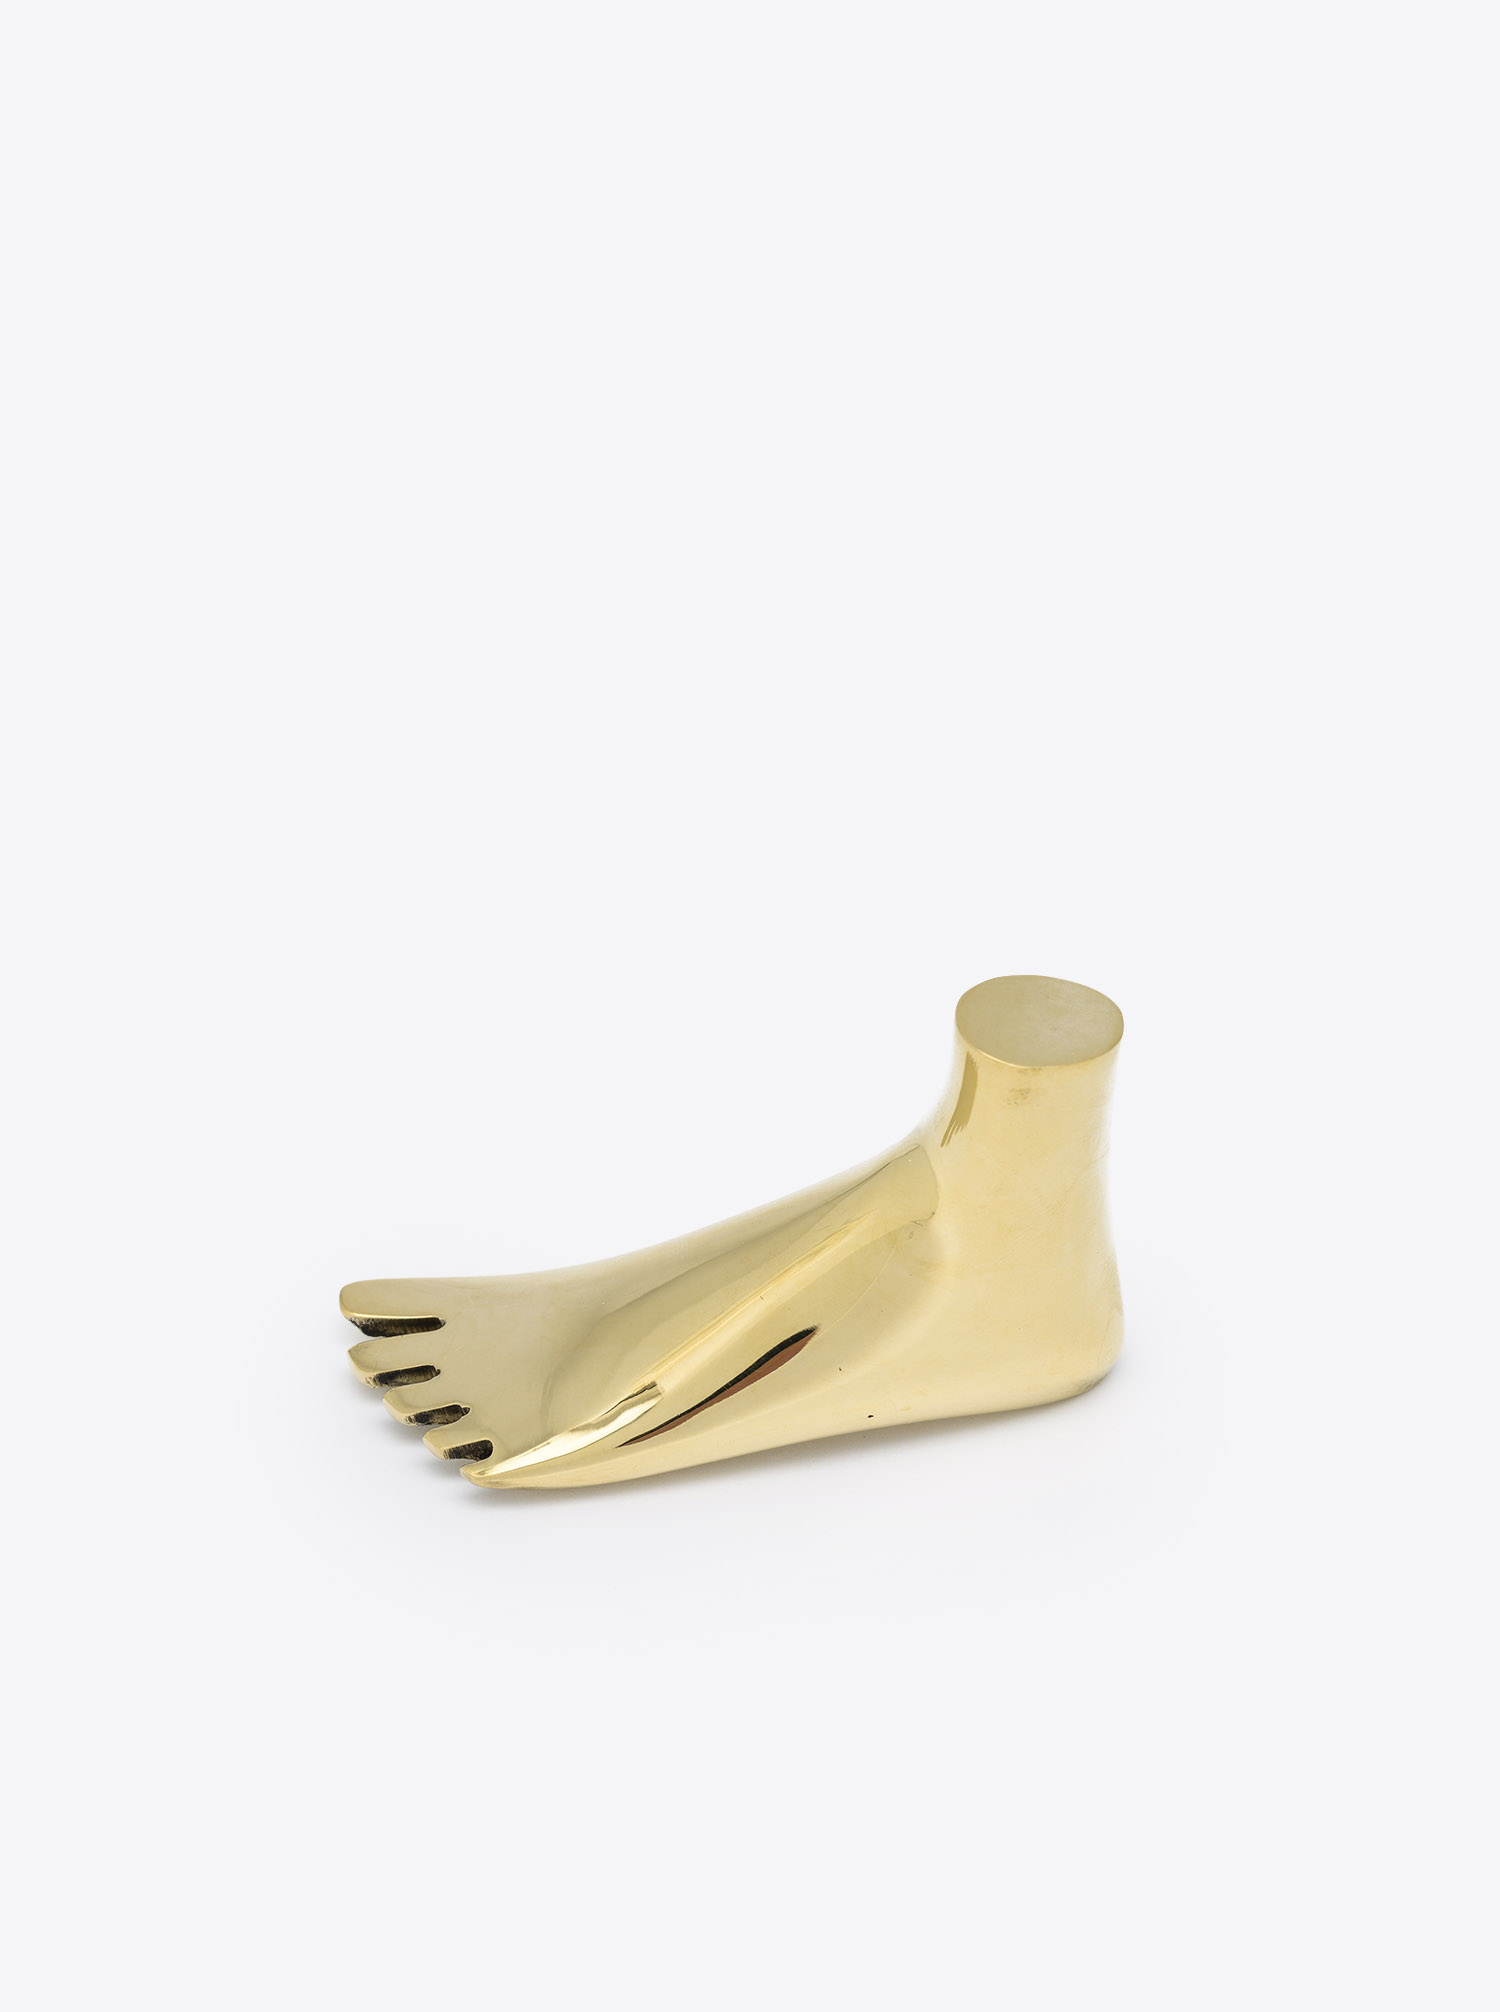 Paperweight Foot Brass polished